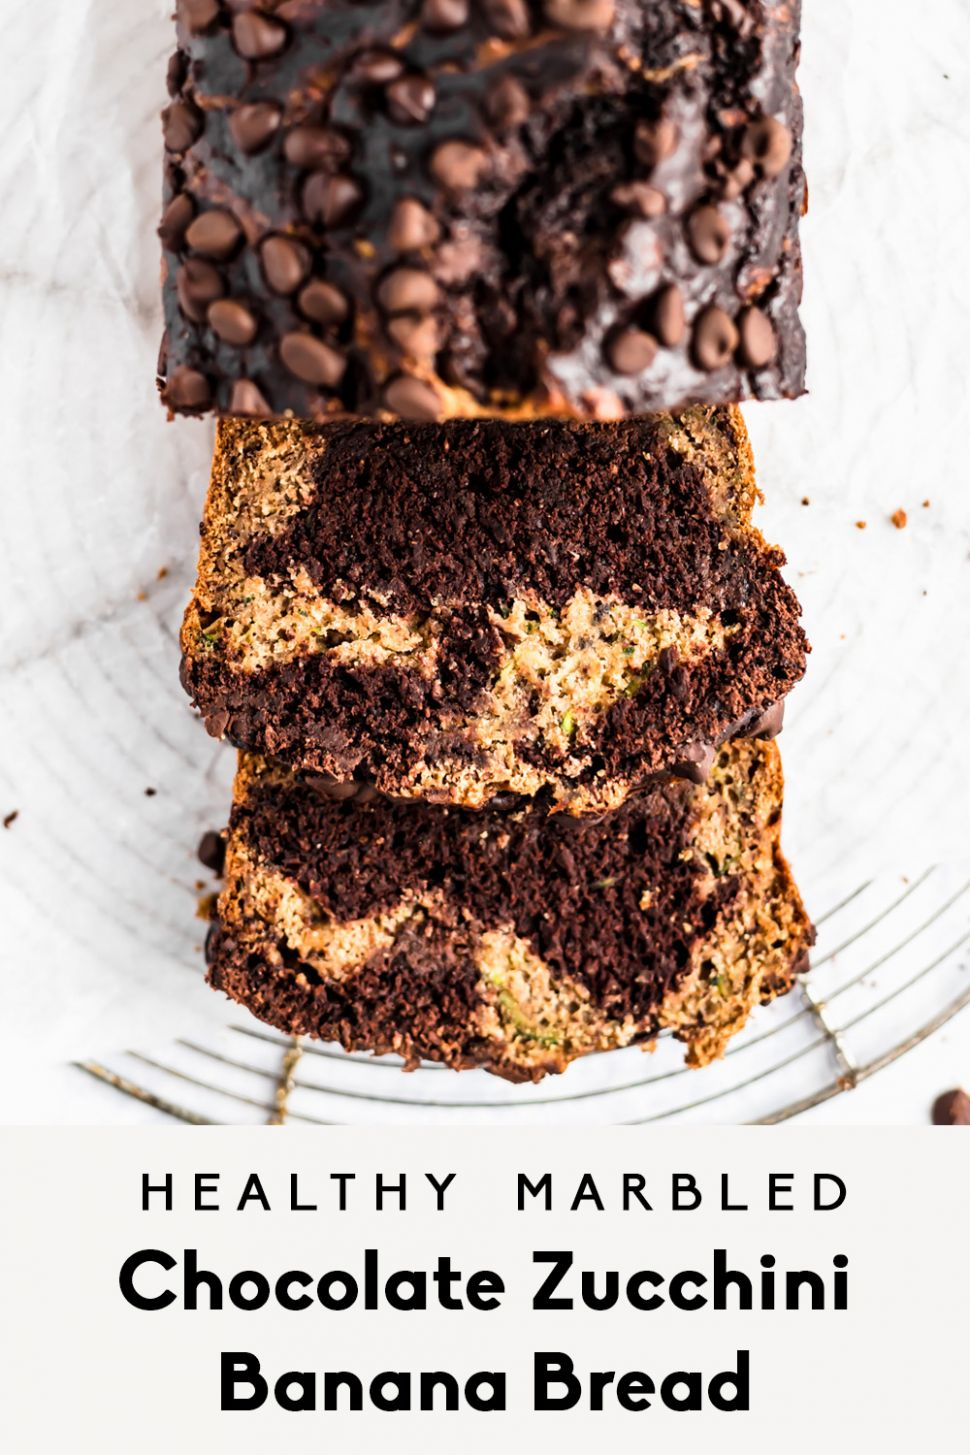 Healthy Marbled Chocolate Zucchini Banana Bread | Ambitious Kitchen - Recipe Chocolate Zucchini Banana Bread